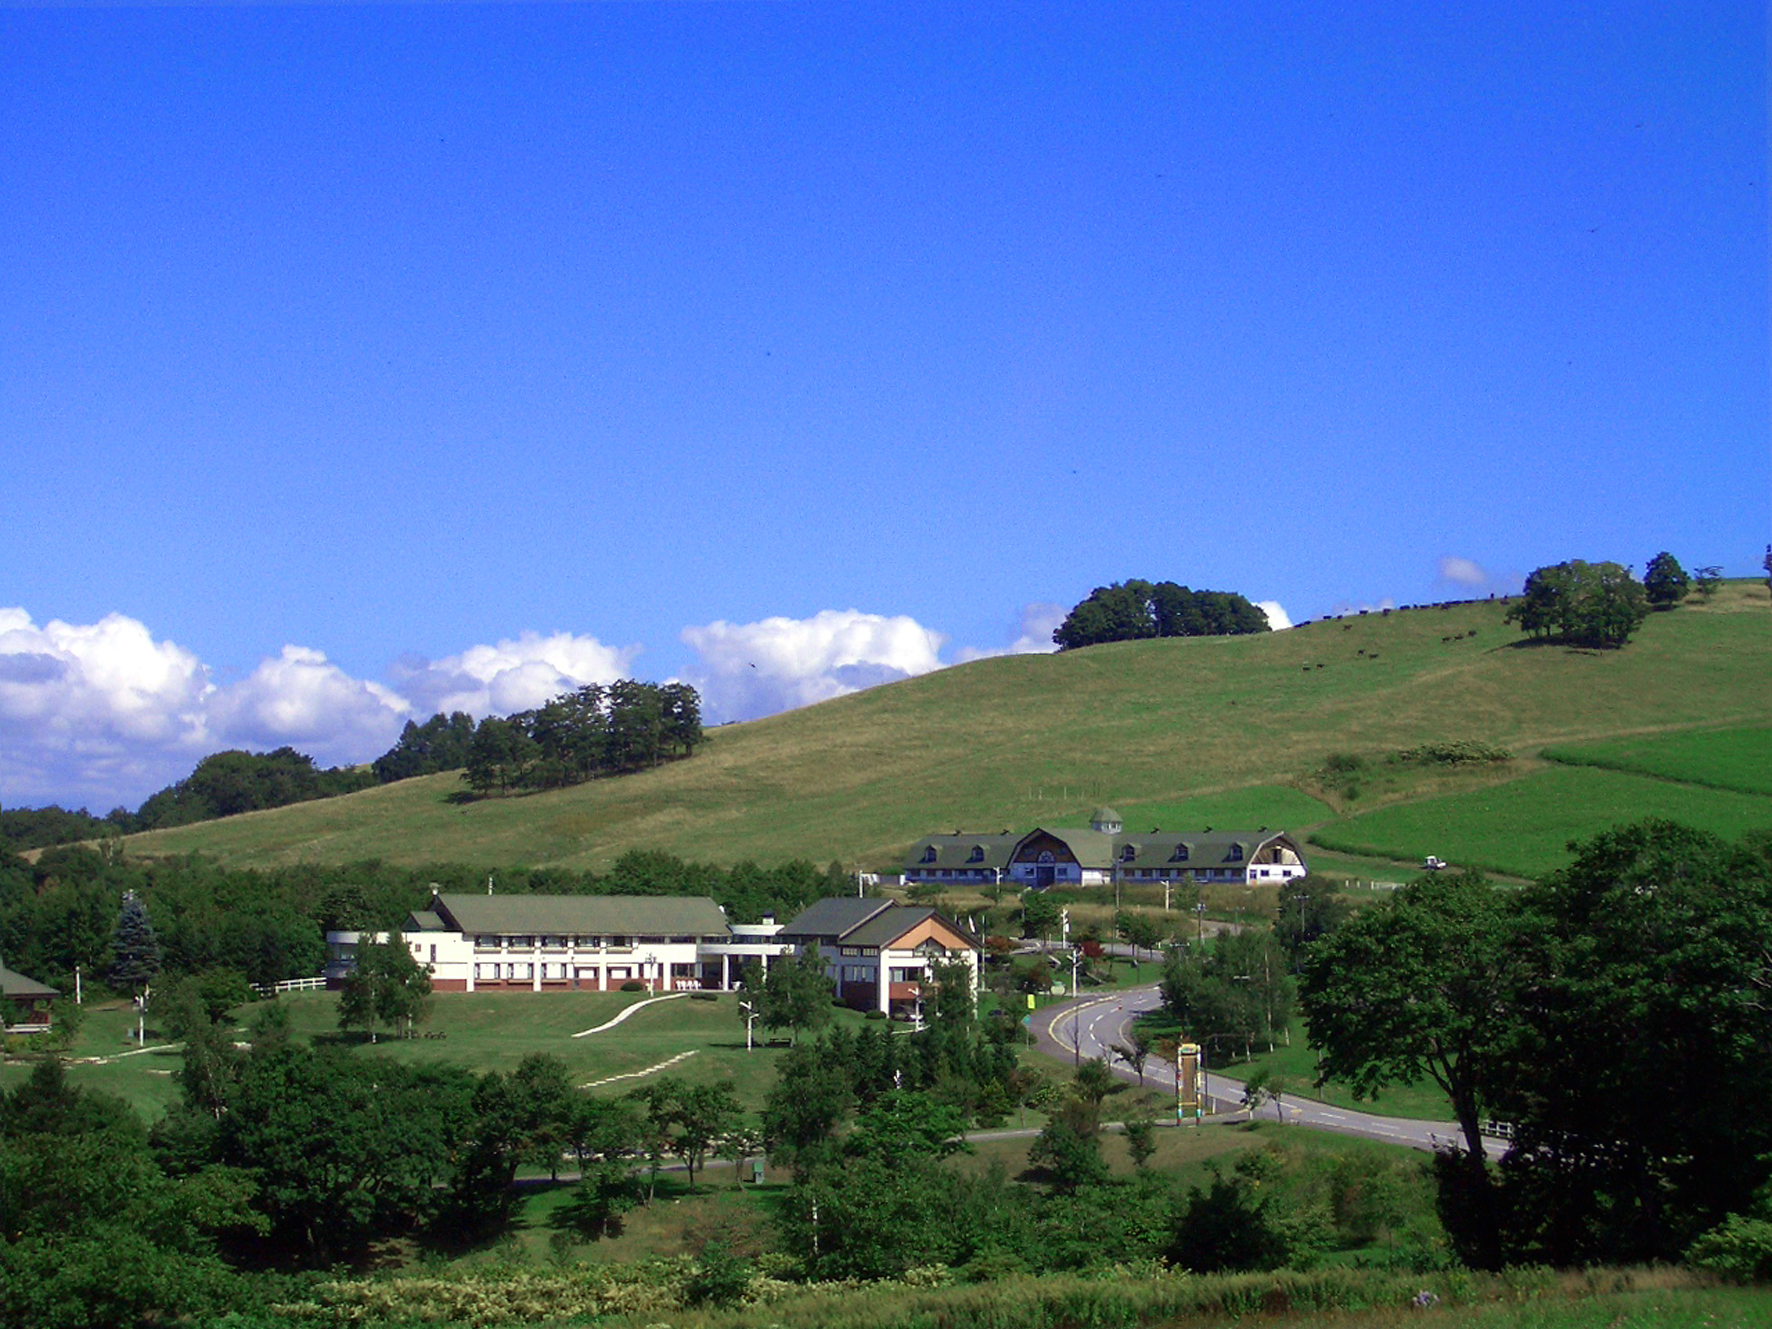 Takikawa's Maruka Highlands Conference Center